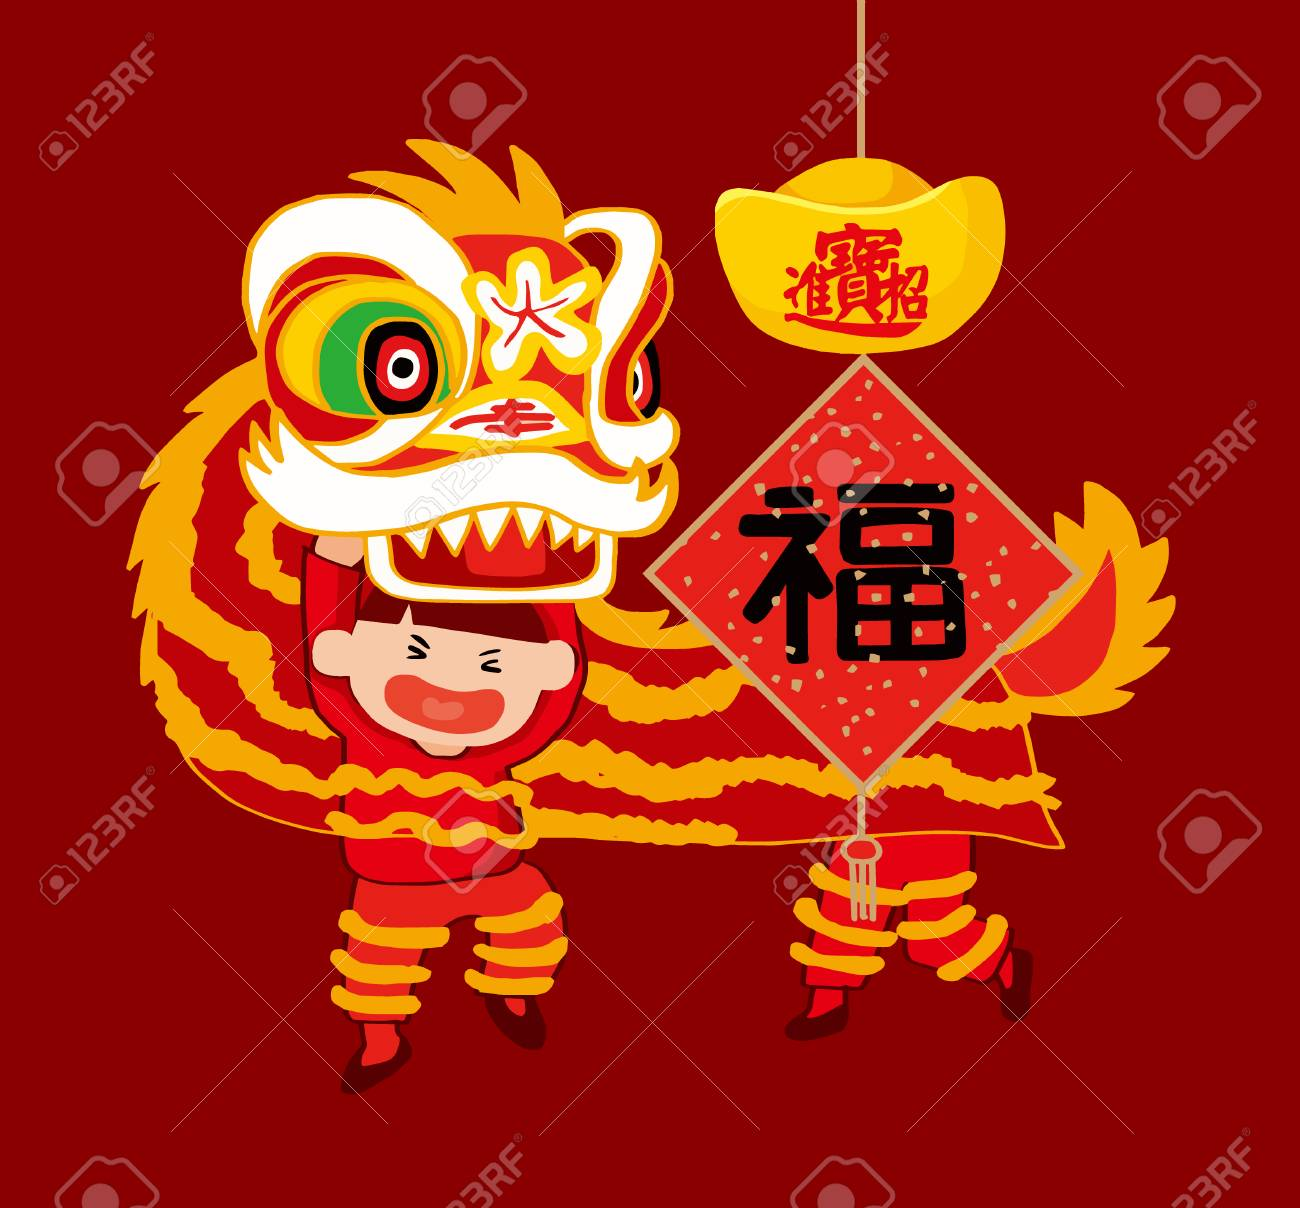 d02534946 Chinese Lunar New Year Lion Dance. Happy dancer in Chinese traditional  costume holding colorful lion